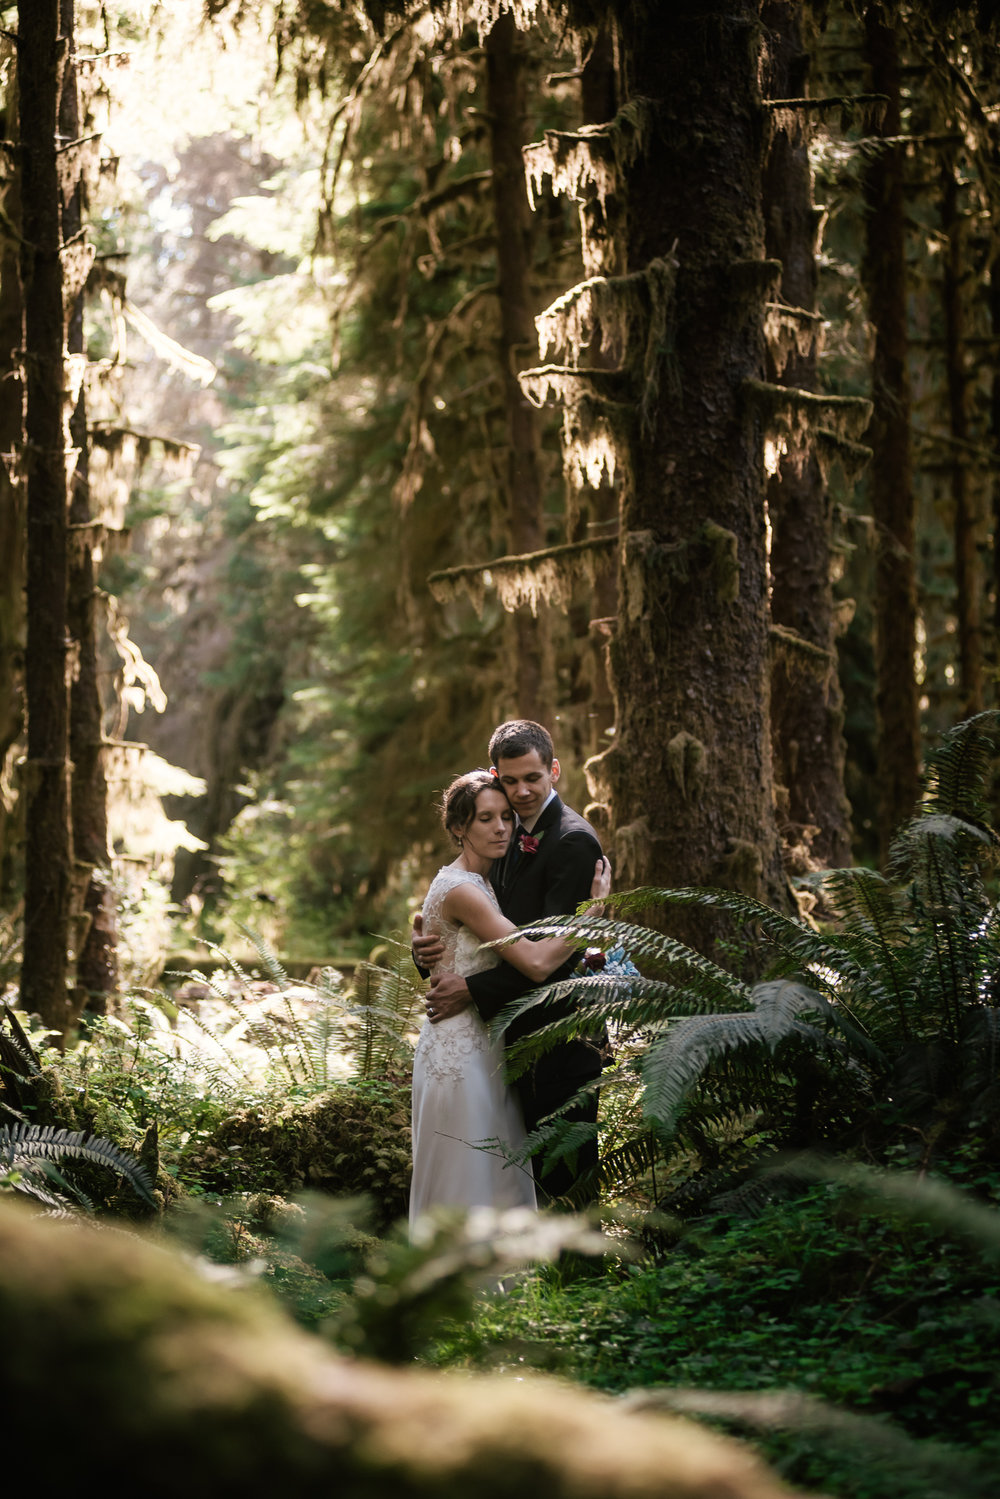 Newlyweds tender embrace among the greenery of the Pacific Northwest.